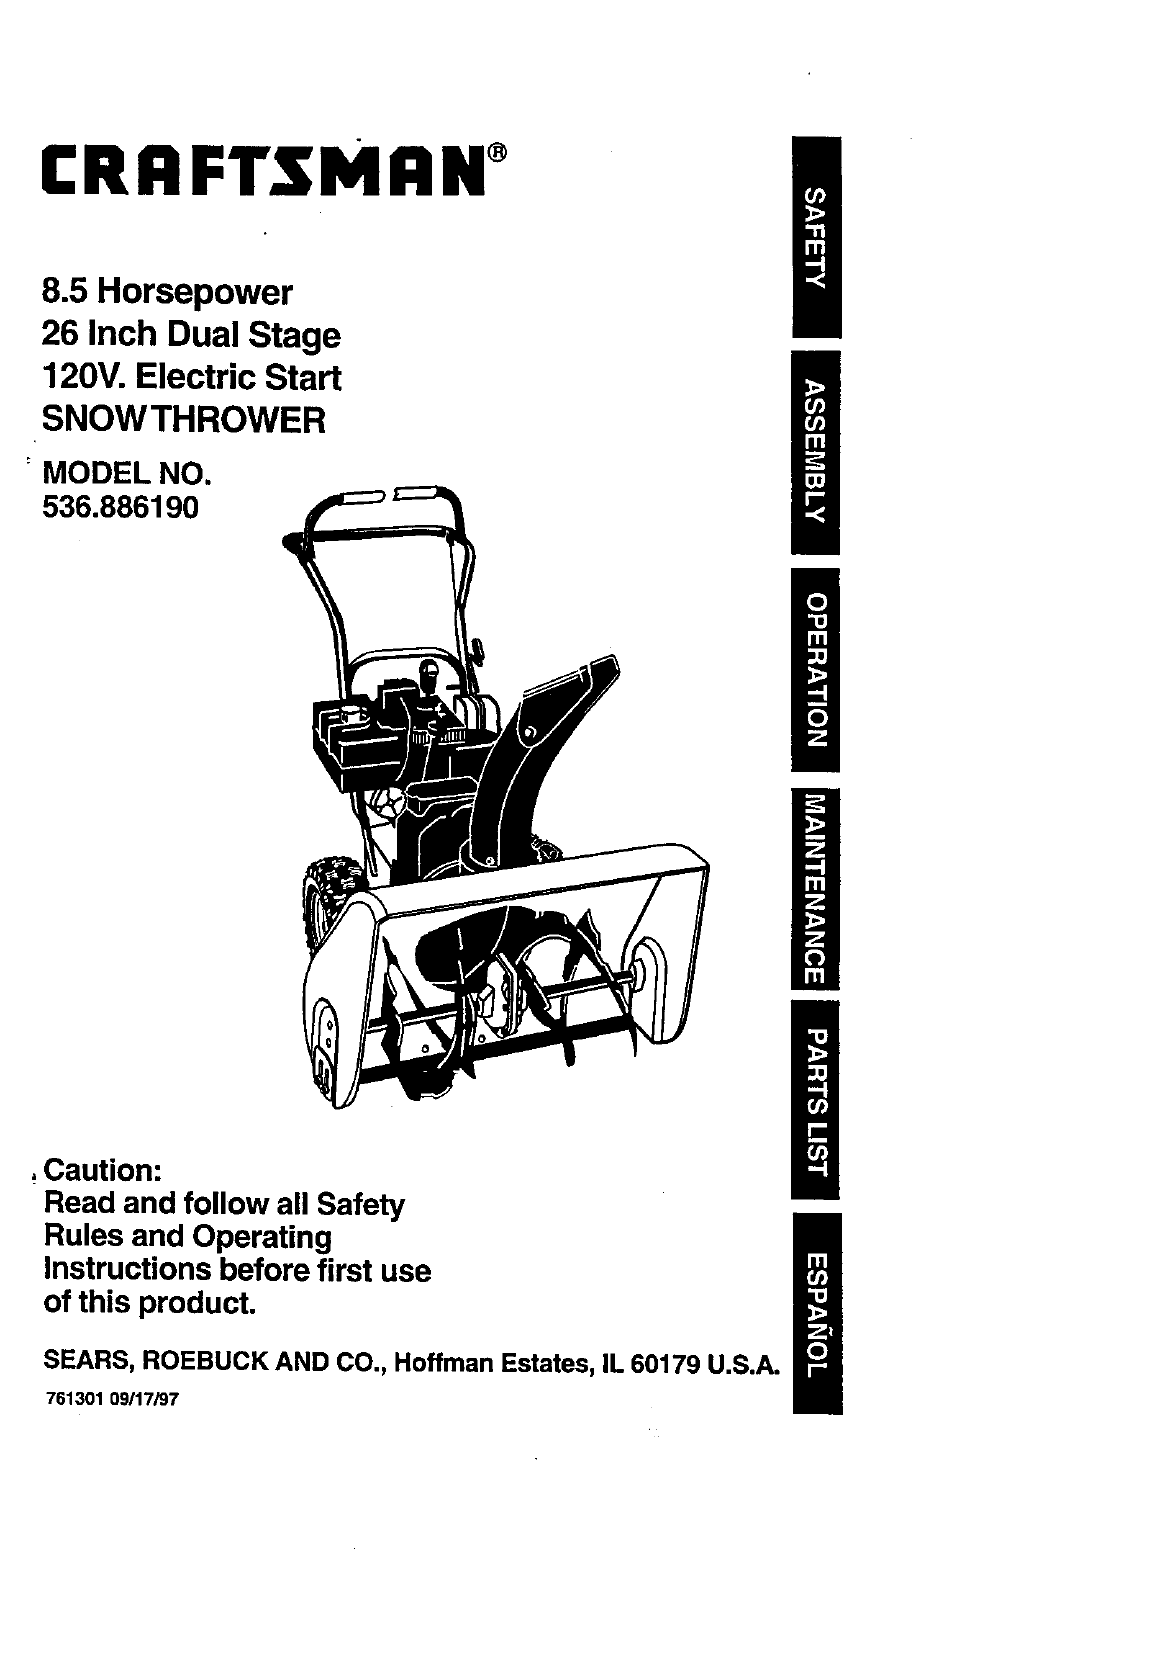 Craftsman User Manual 8 5 Hp 26 Dual Stage 120v